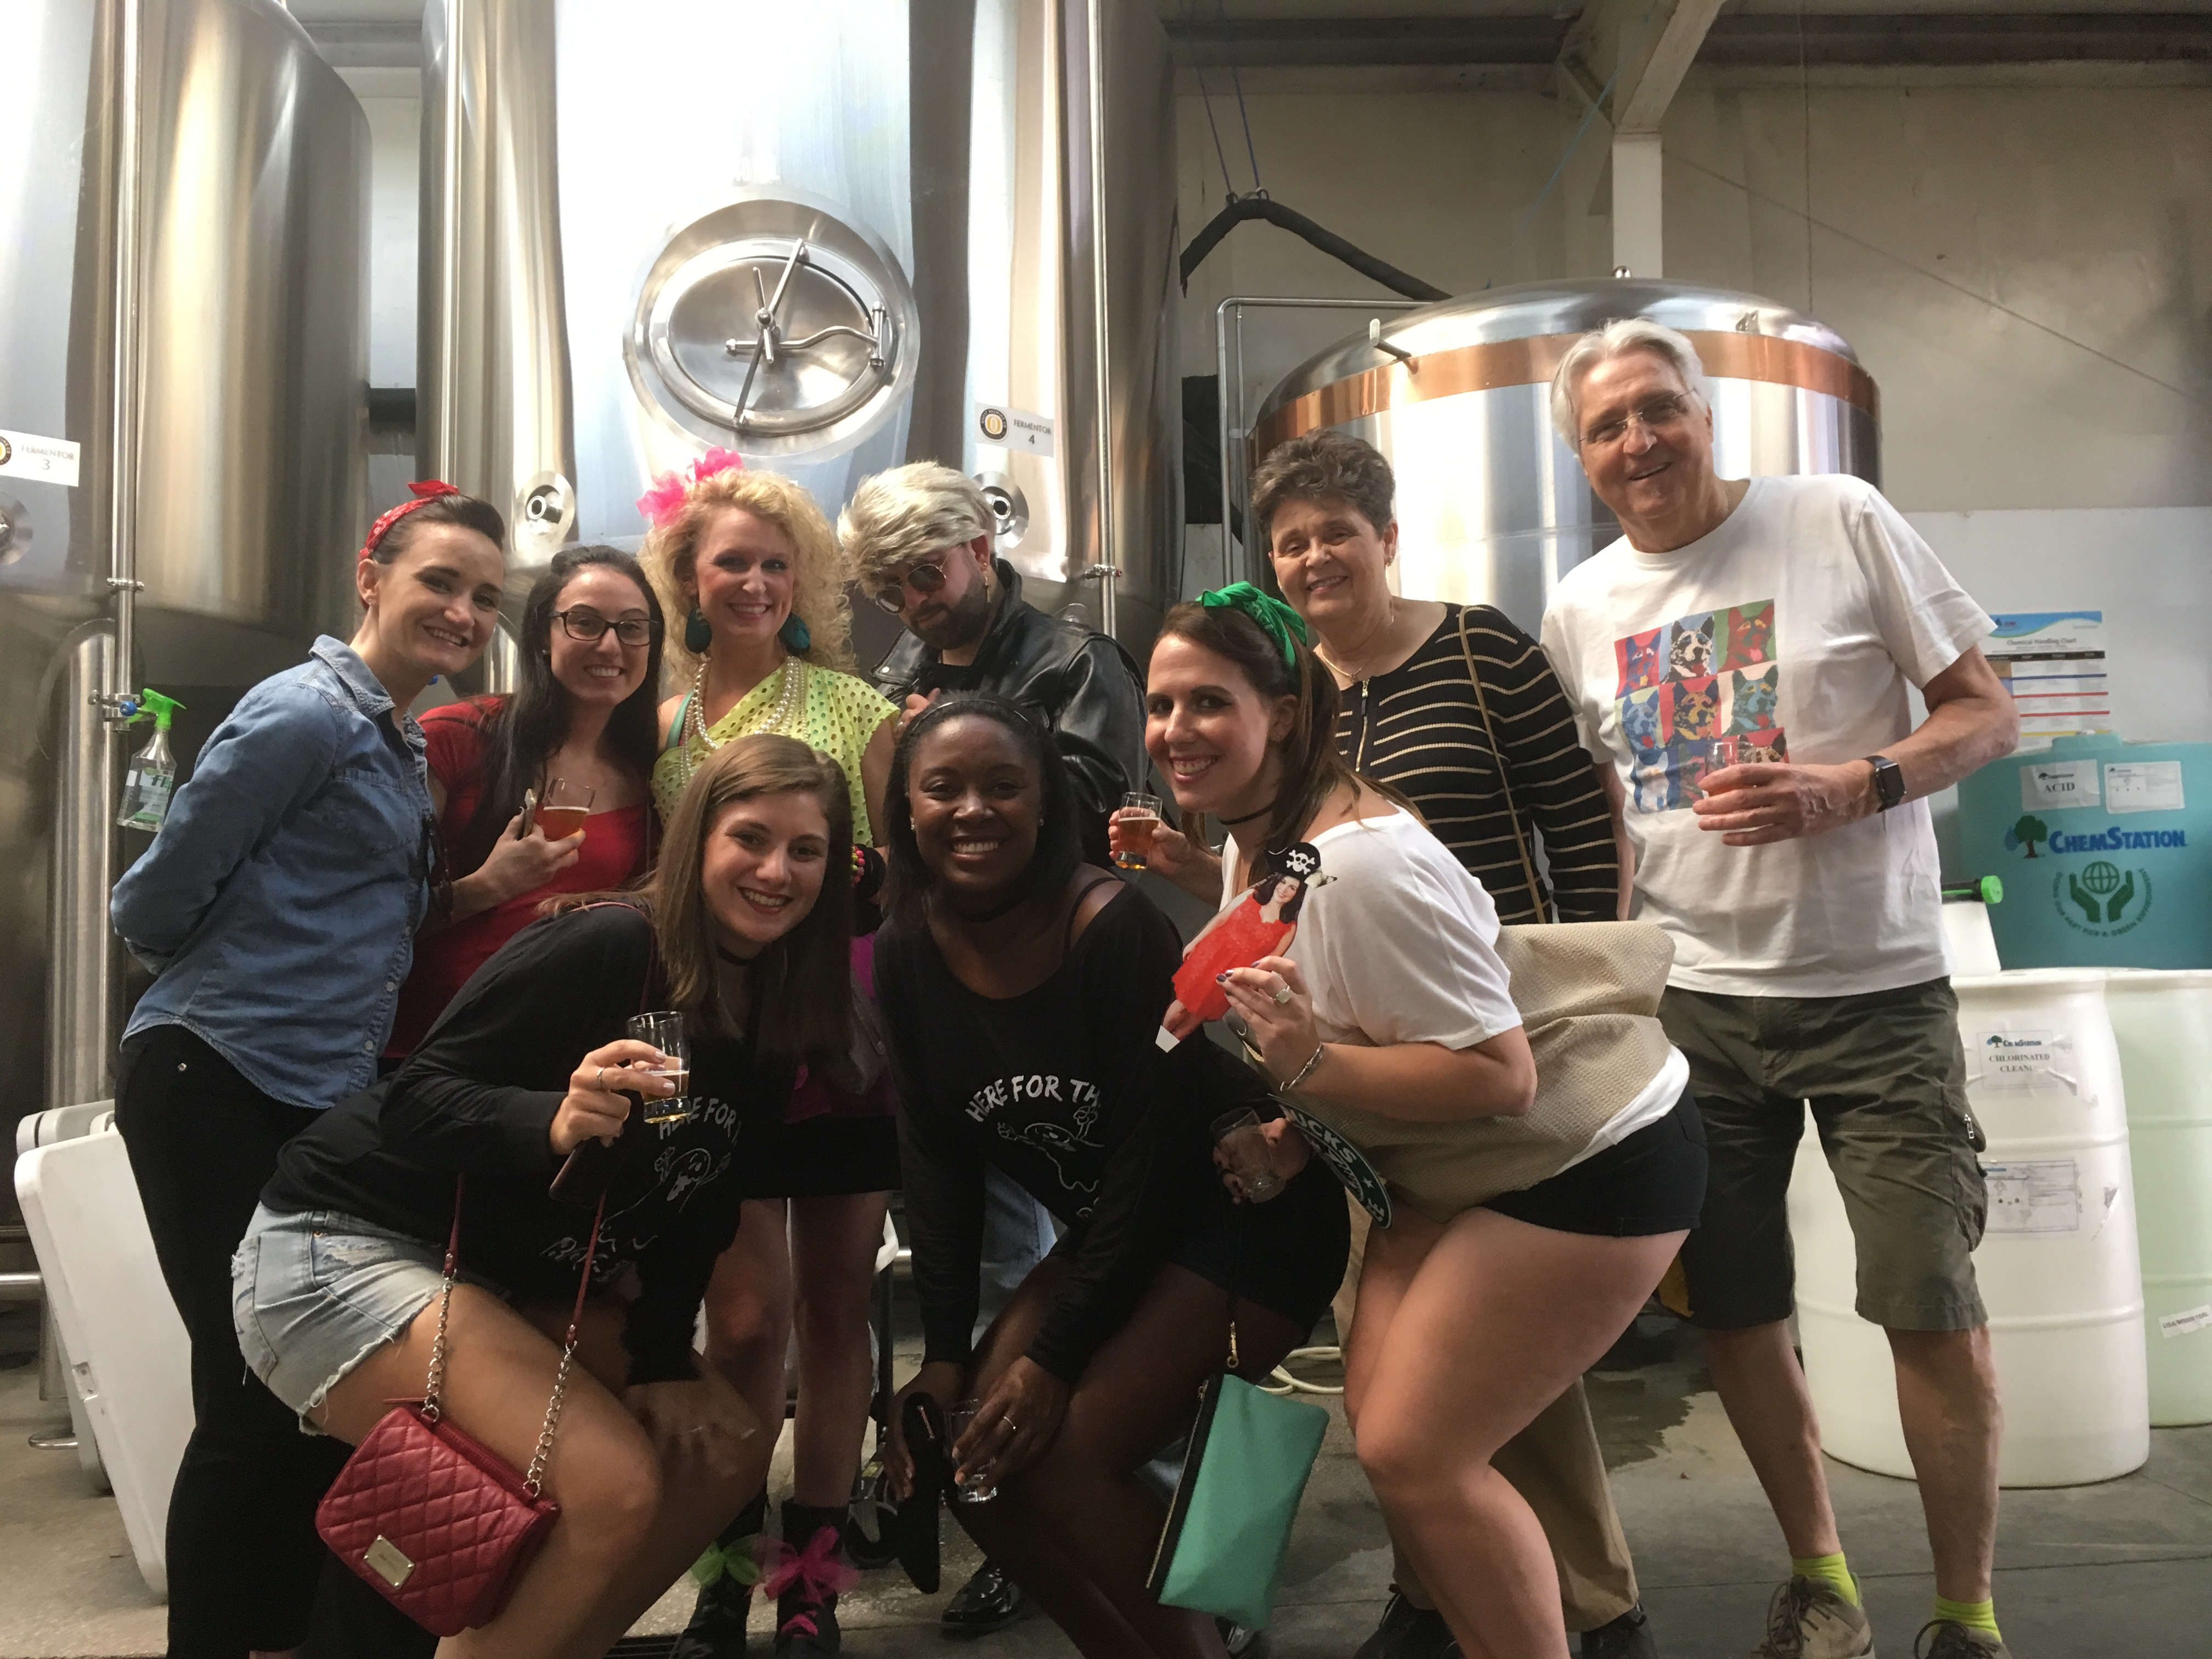 Tours of breweries in Western North Carolina and Upstate SC